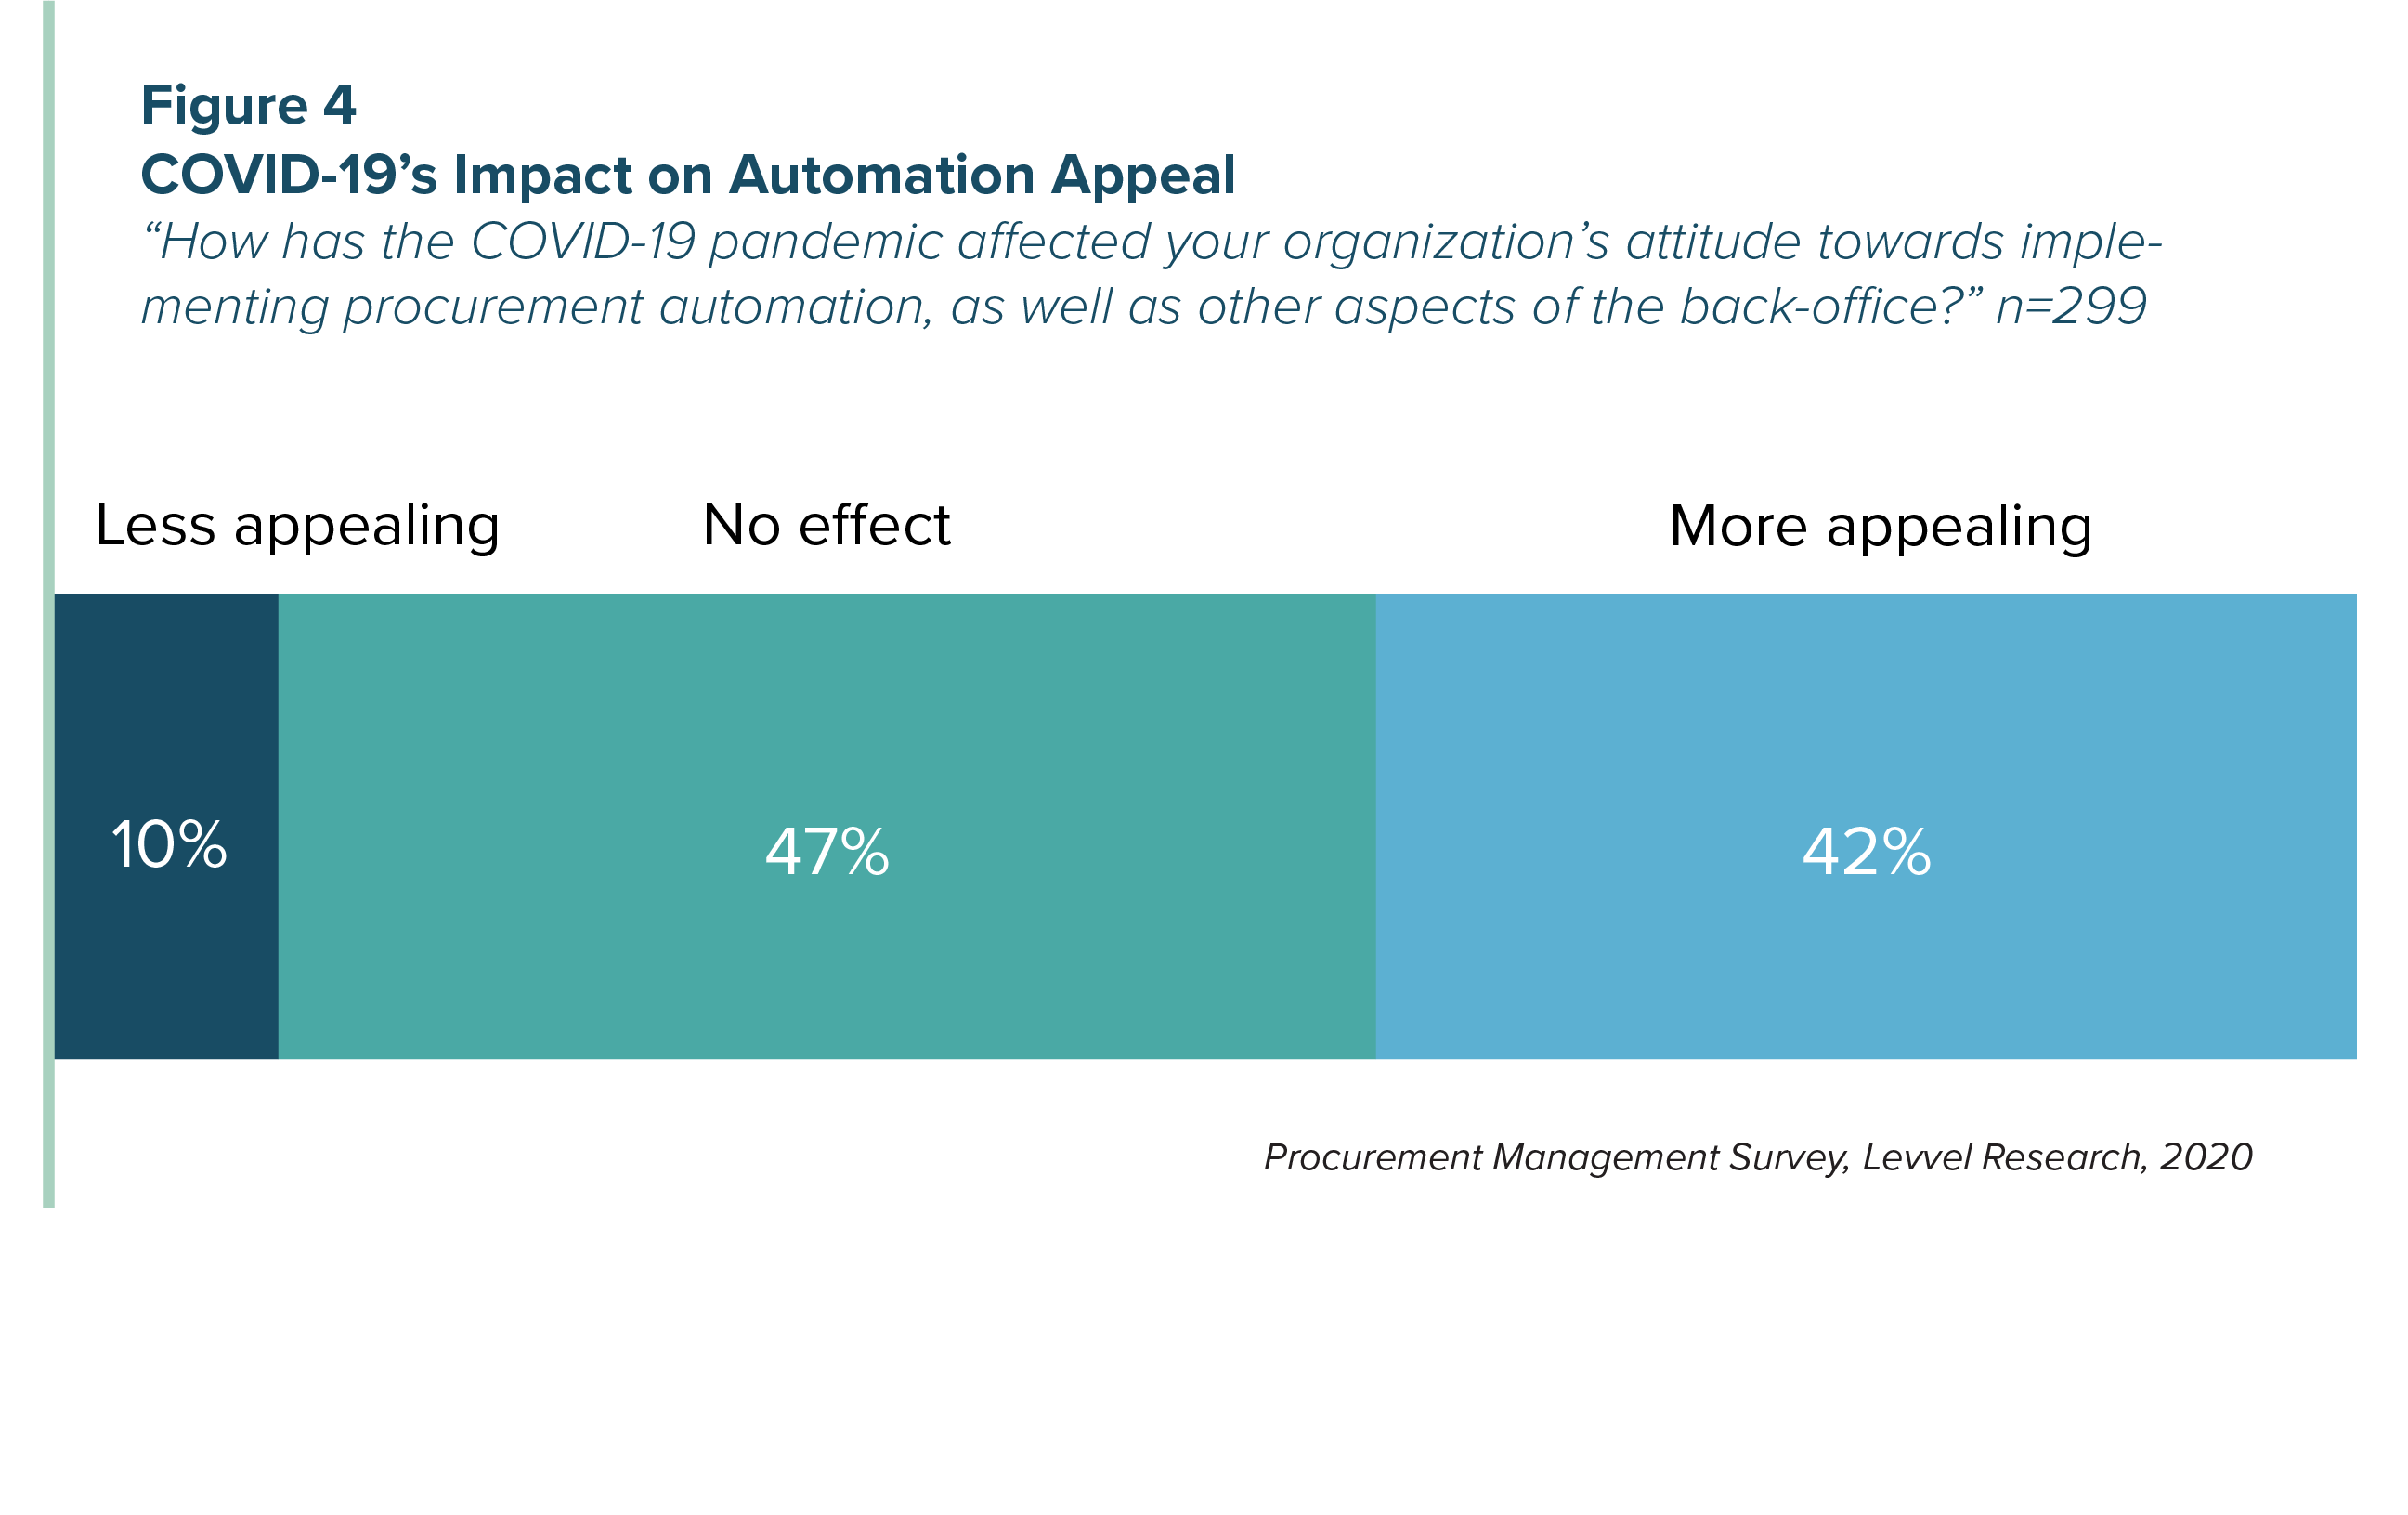 Figure 4 - COVID-19's Impact on Automation Appeal